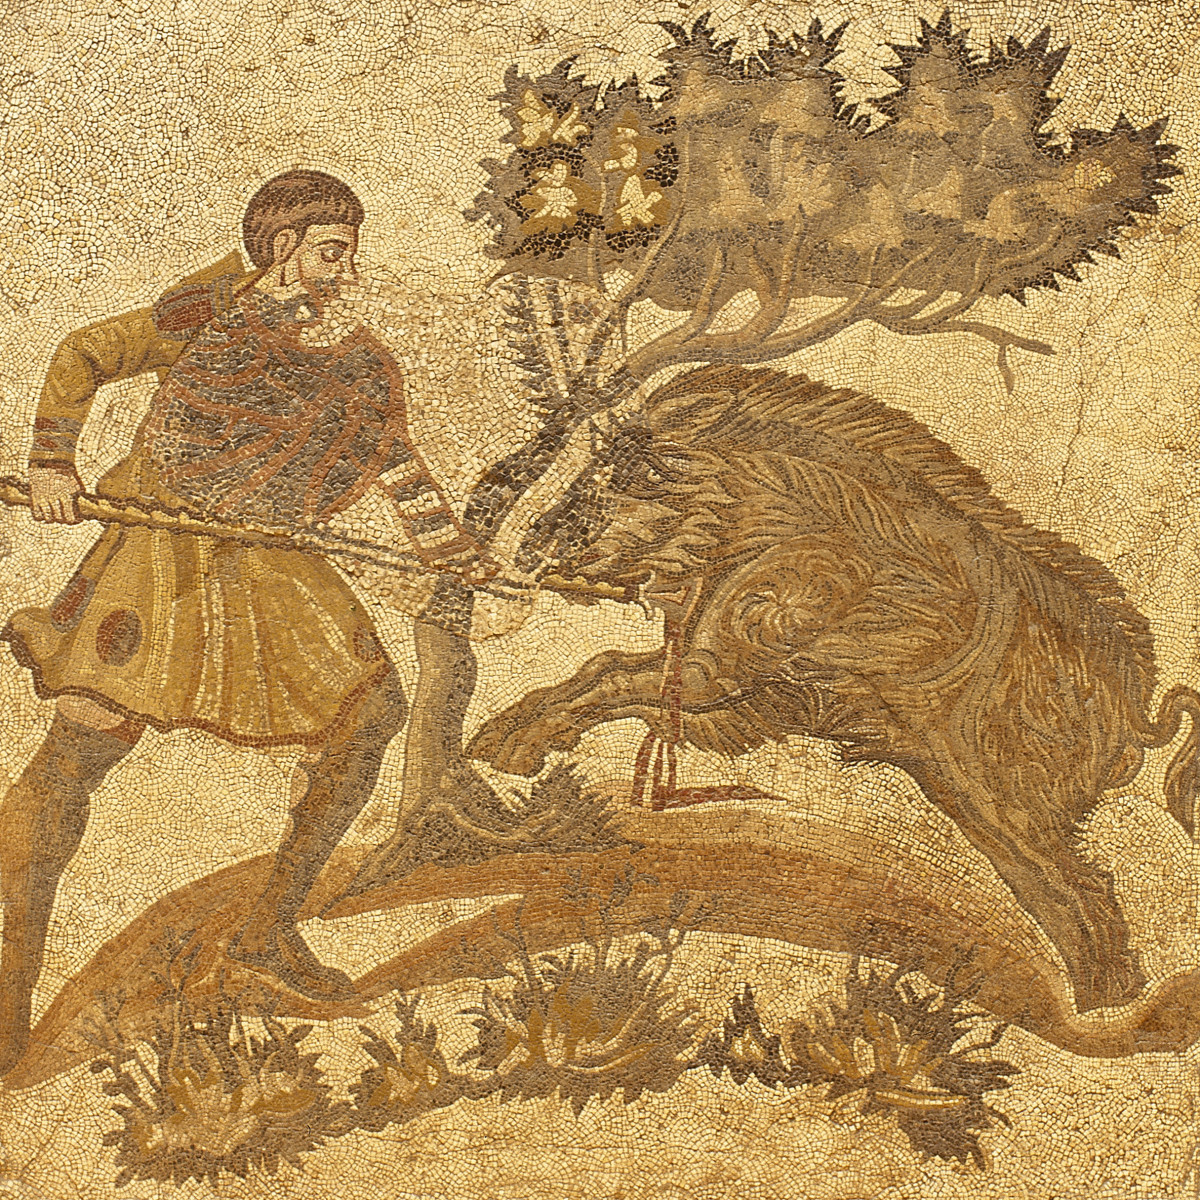 Roman soldier hunting a wild boar.